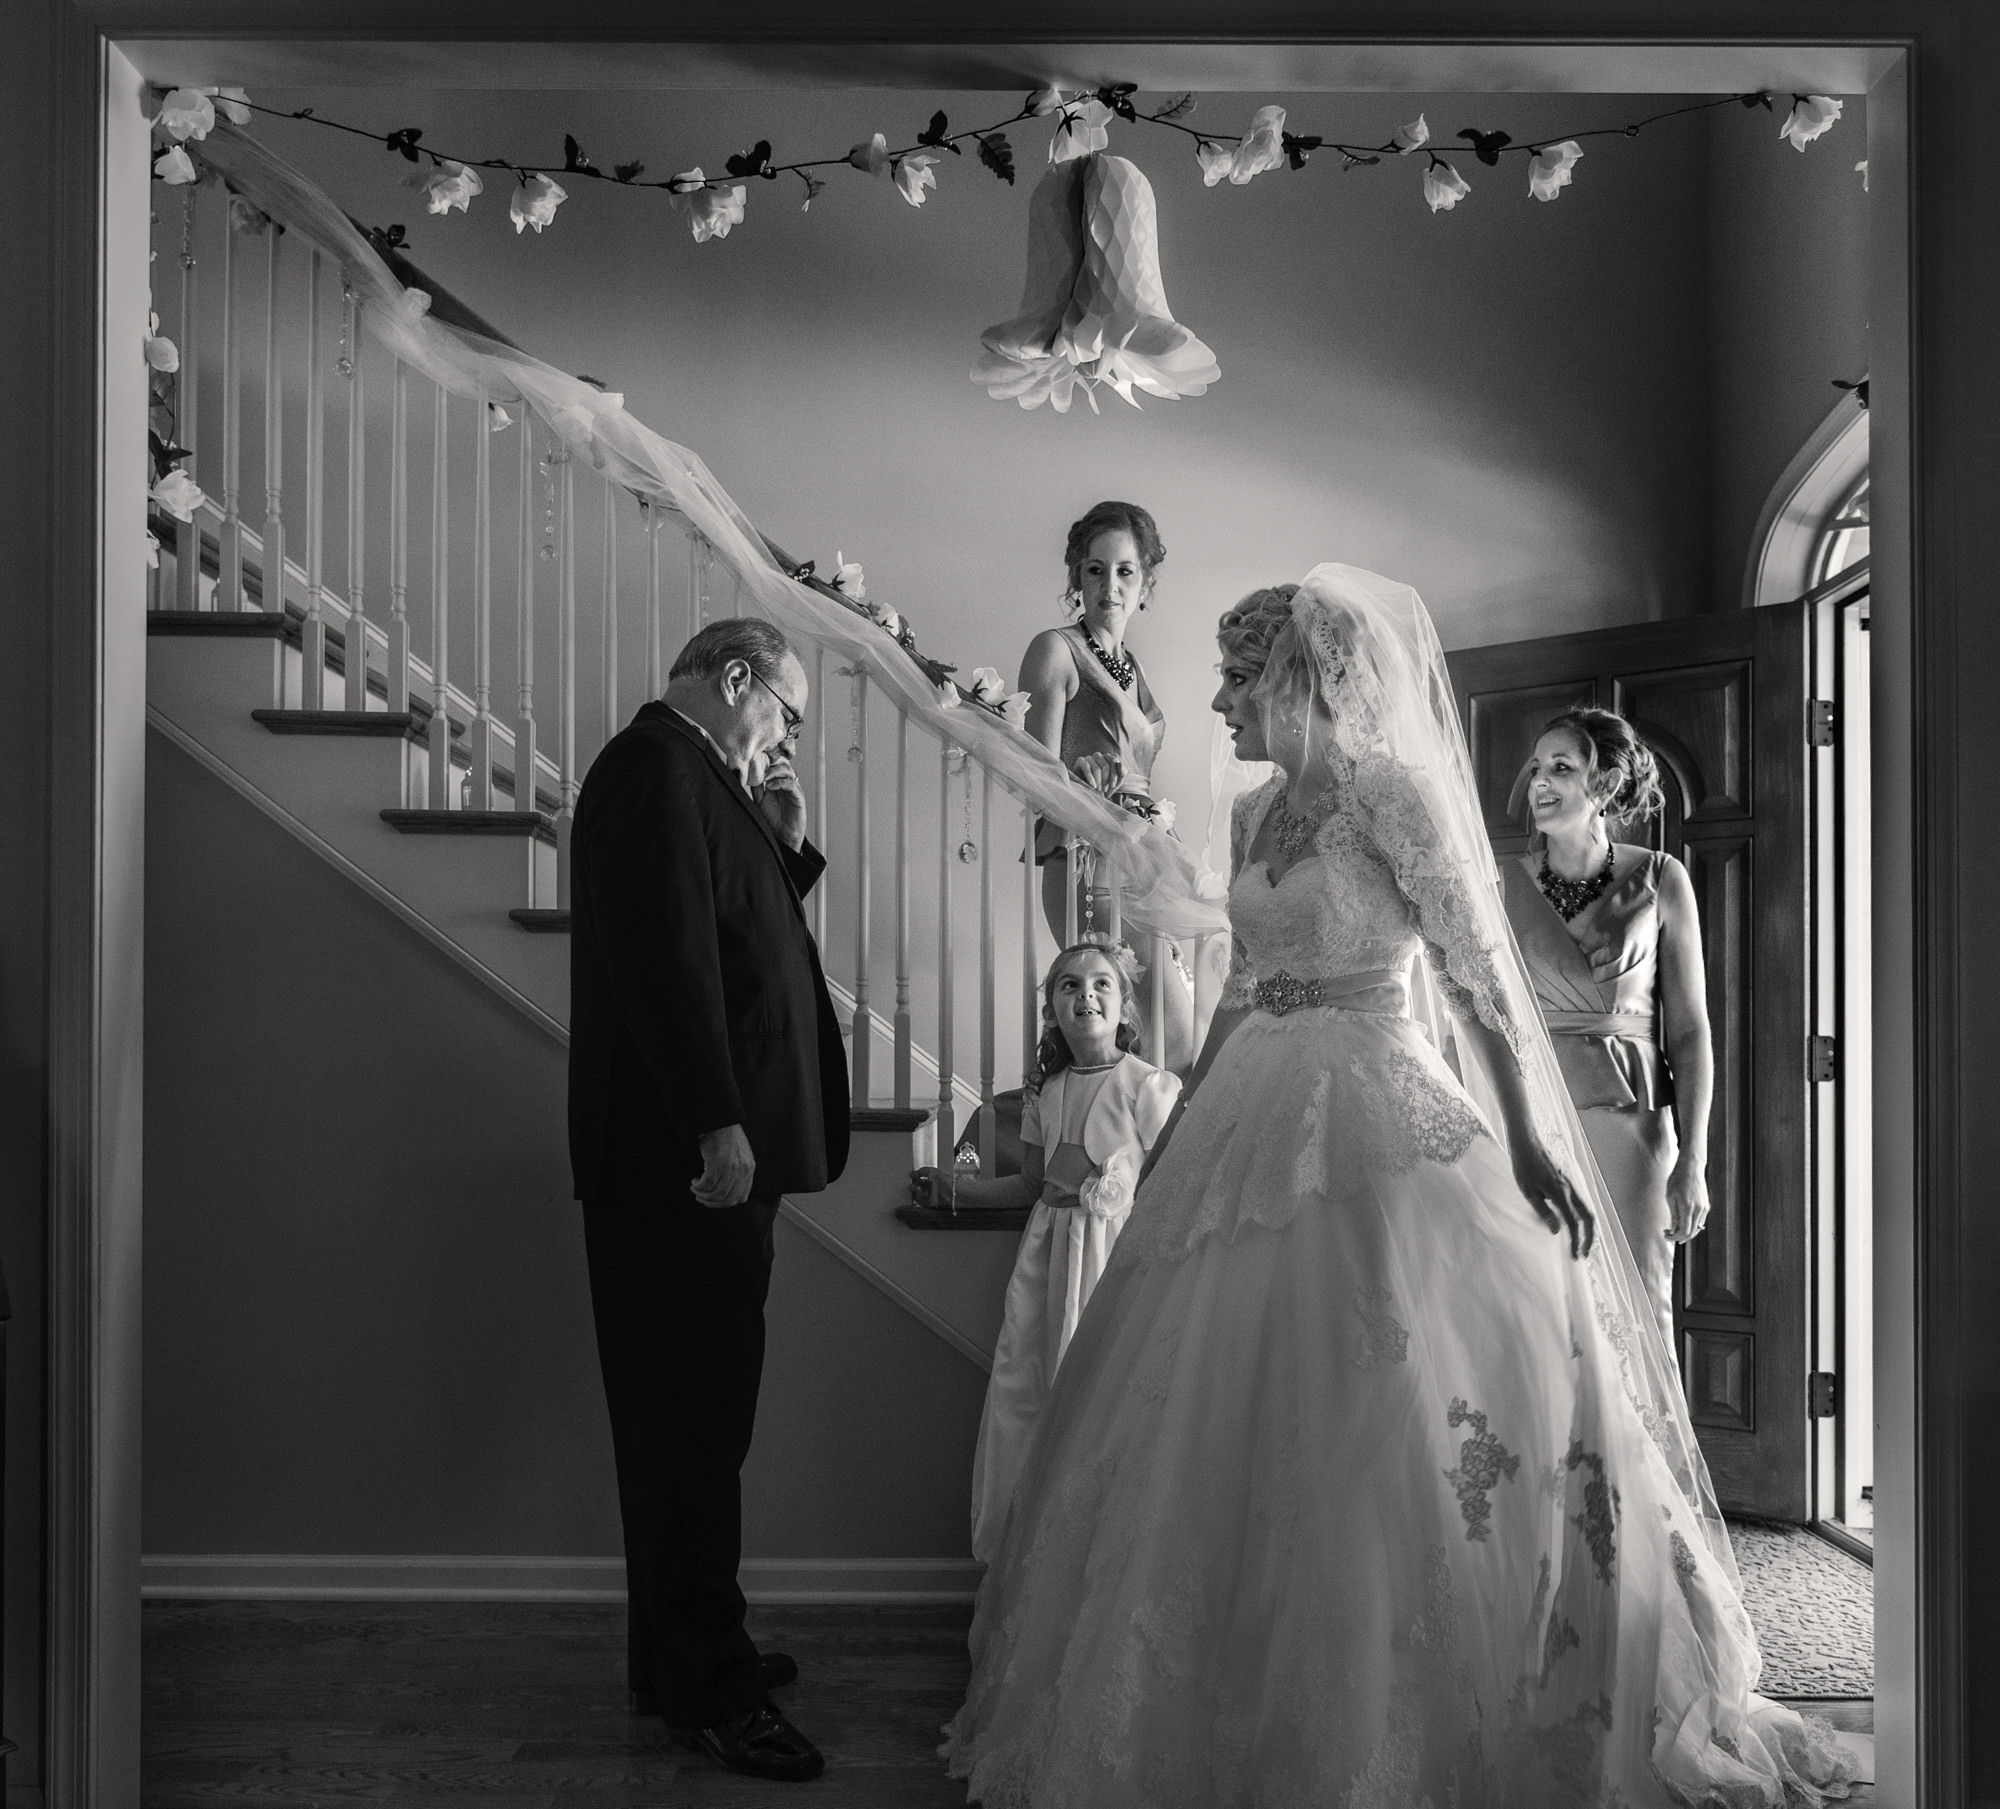 black-and-white-father-and-bride-first-look-with-family-on-stairs-worlds-best-wedding-photos-cliff-mautner-new-york-wedding-photographers